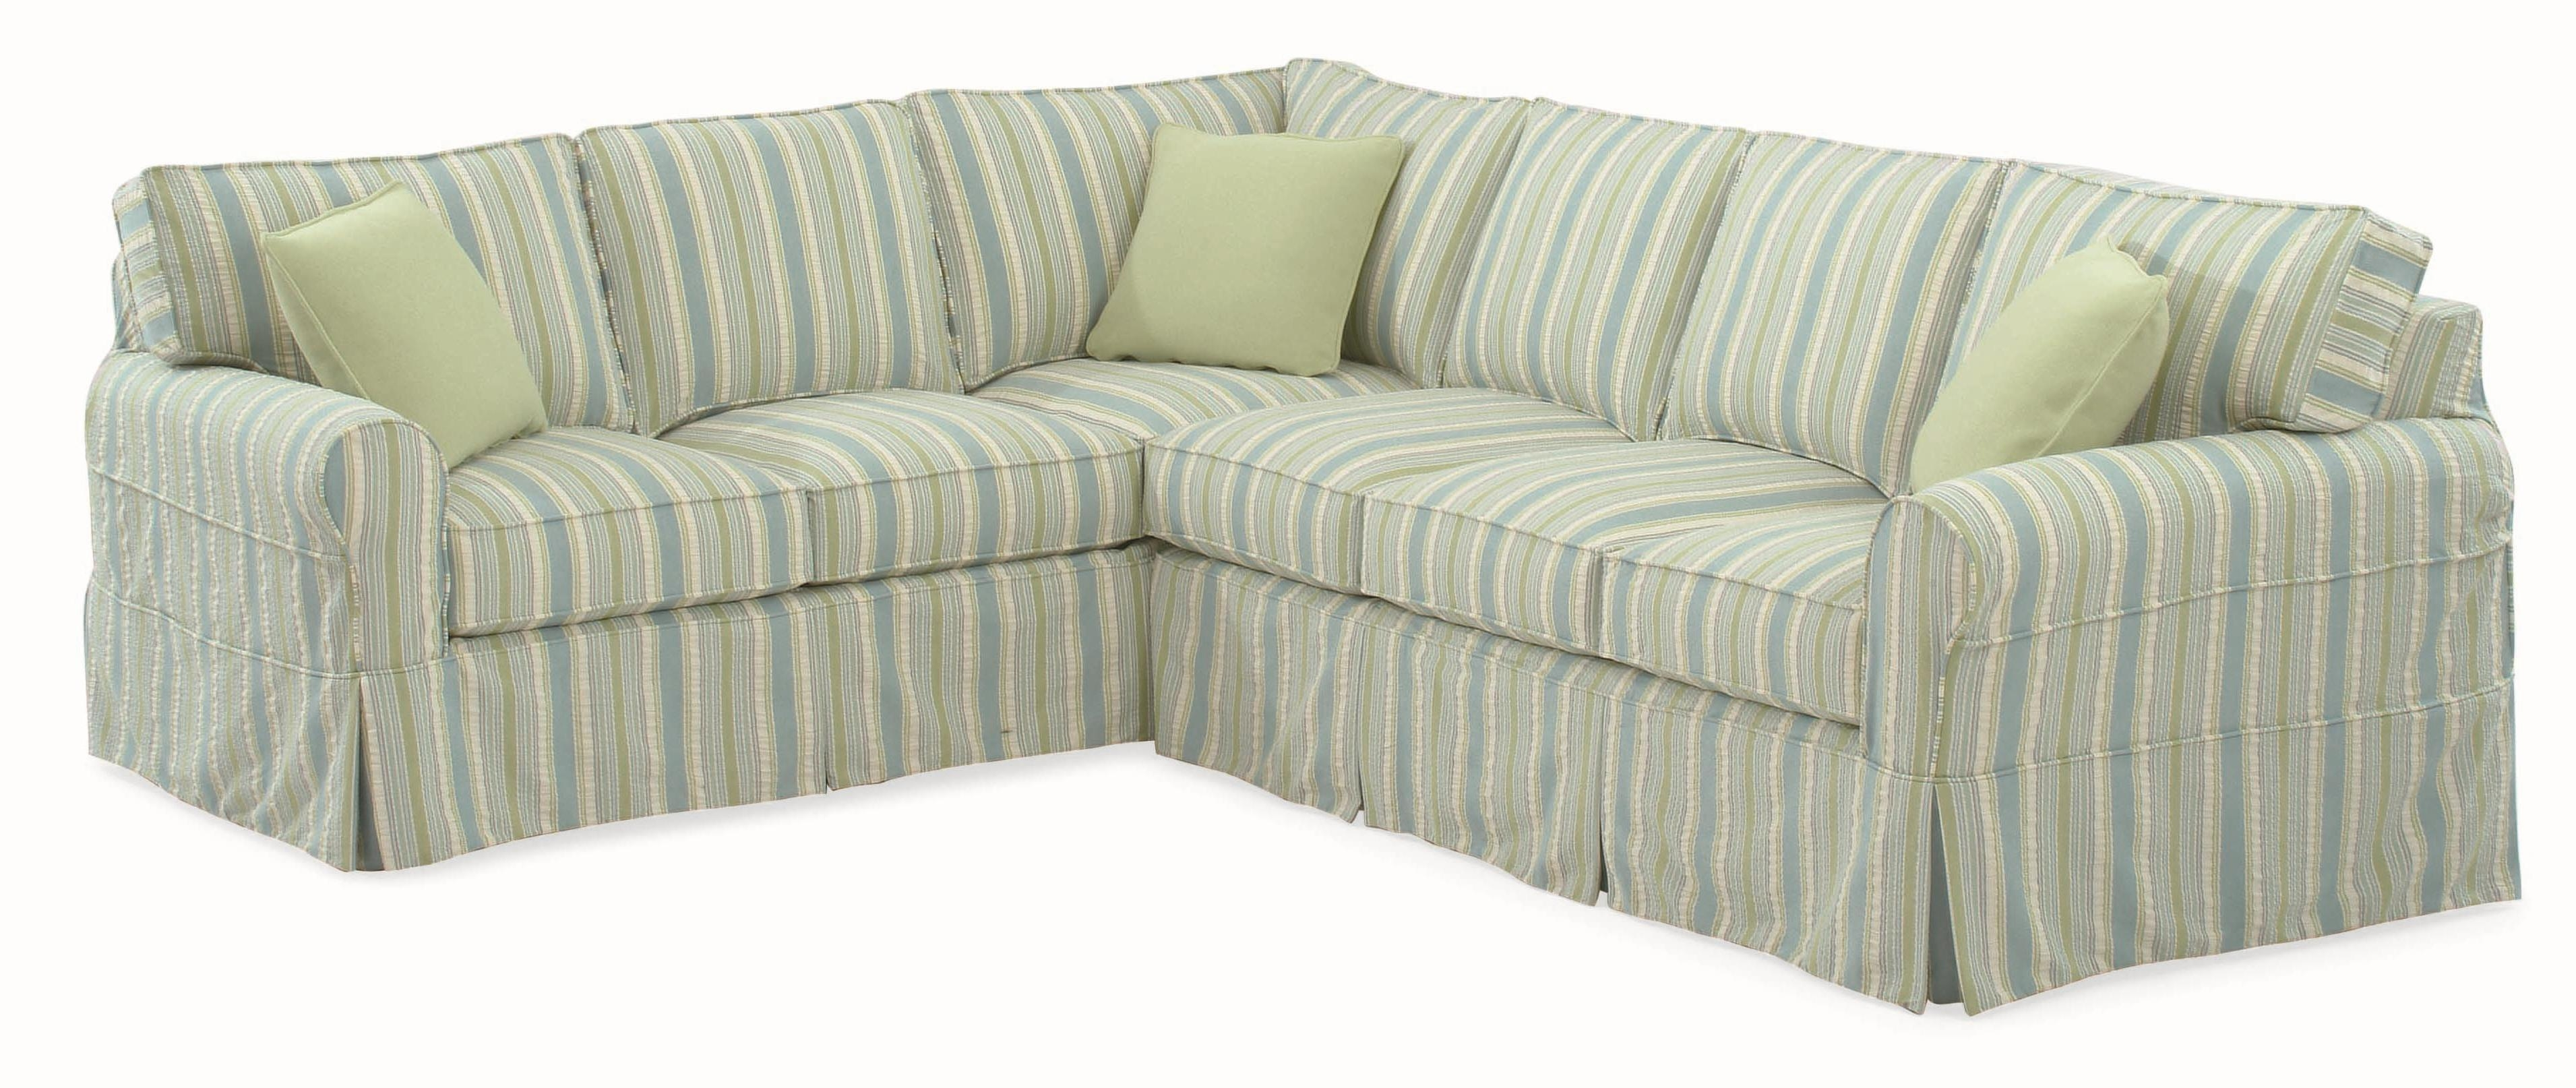 Furniture: L Shaped Couch Covers | Walmart Couch Covers For Slipcovers For Sectional Sofas With Recliners (View 13 of 20)